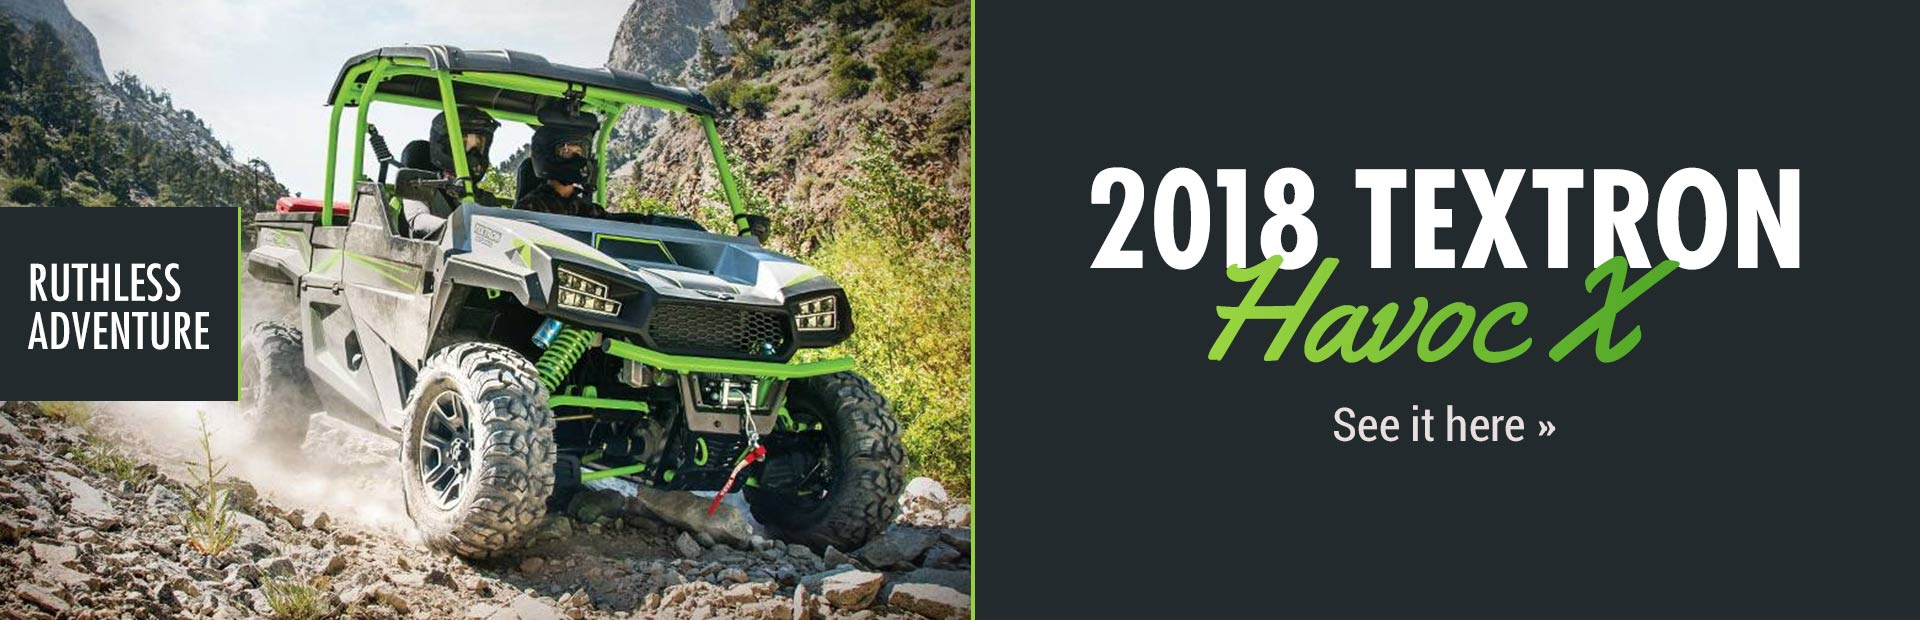 Atv Rental Las Vegas